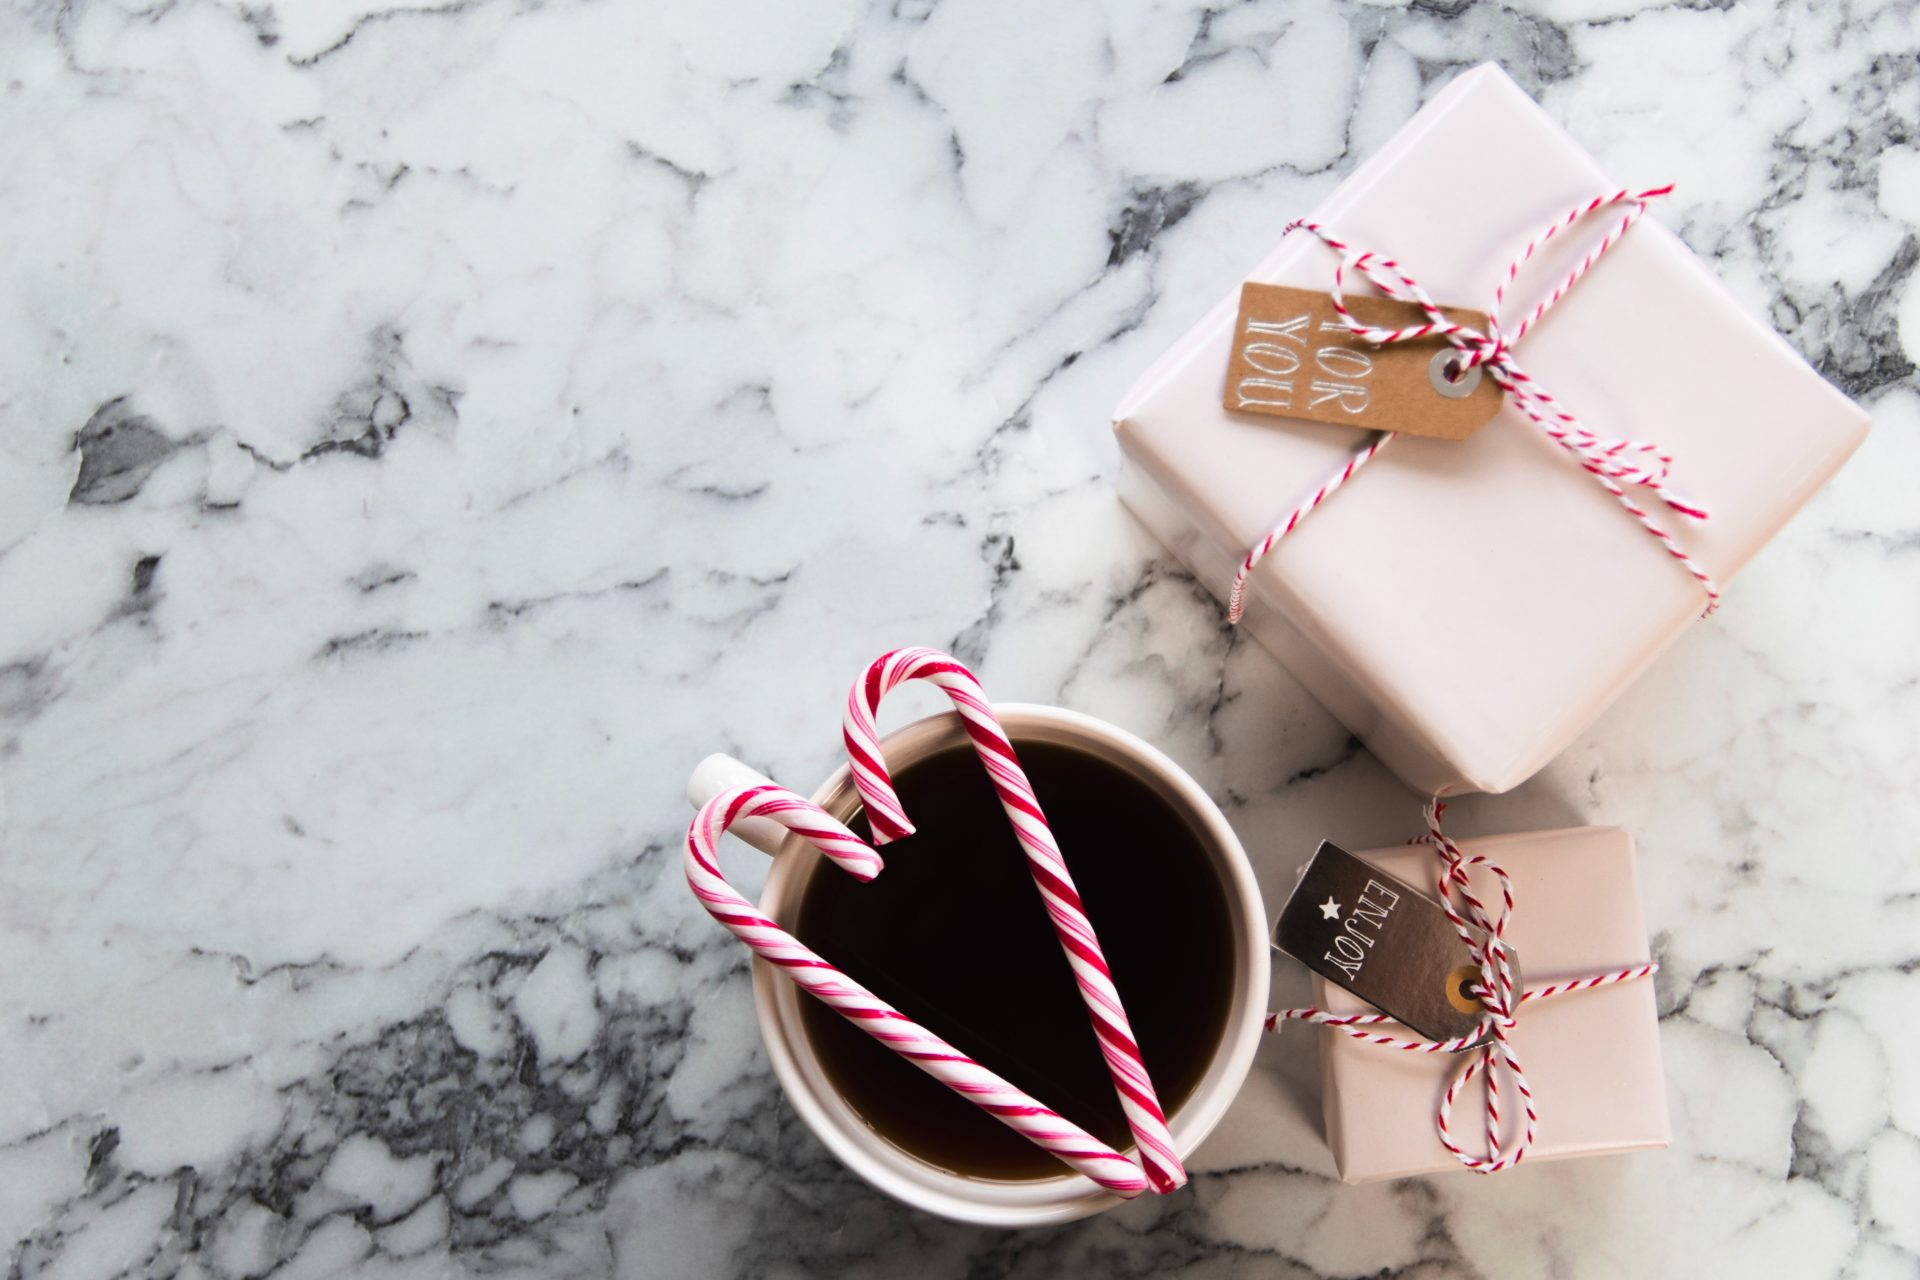 Corporate Holiday Gifts with Coffee and Candy Canes